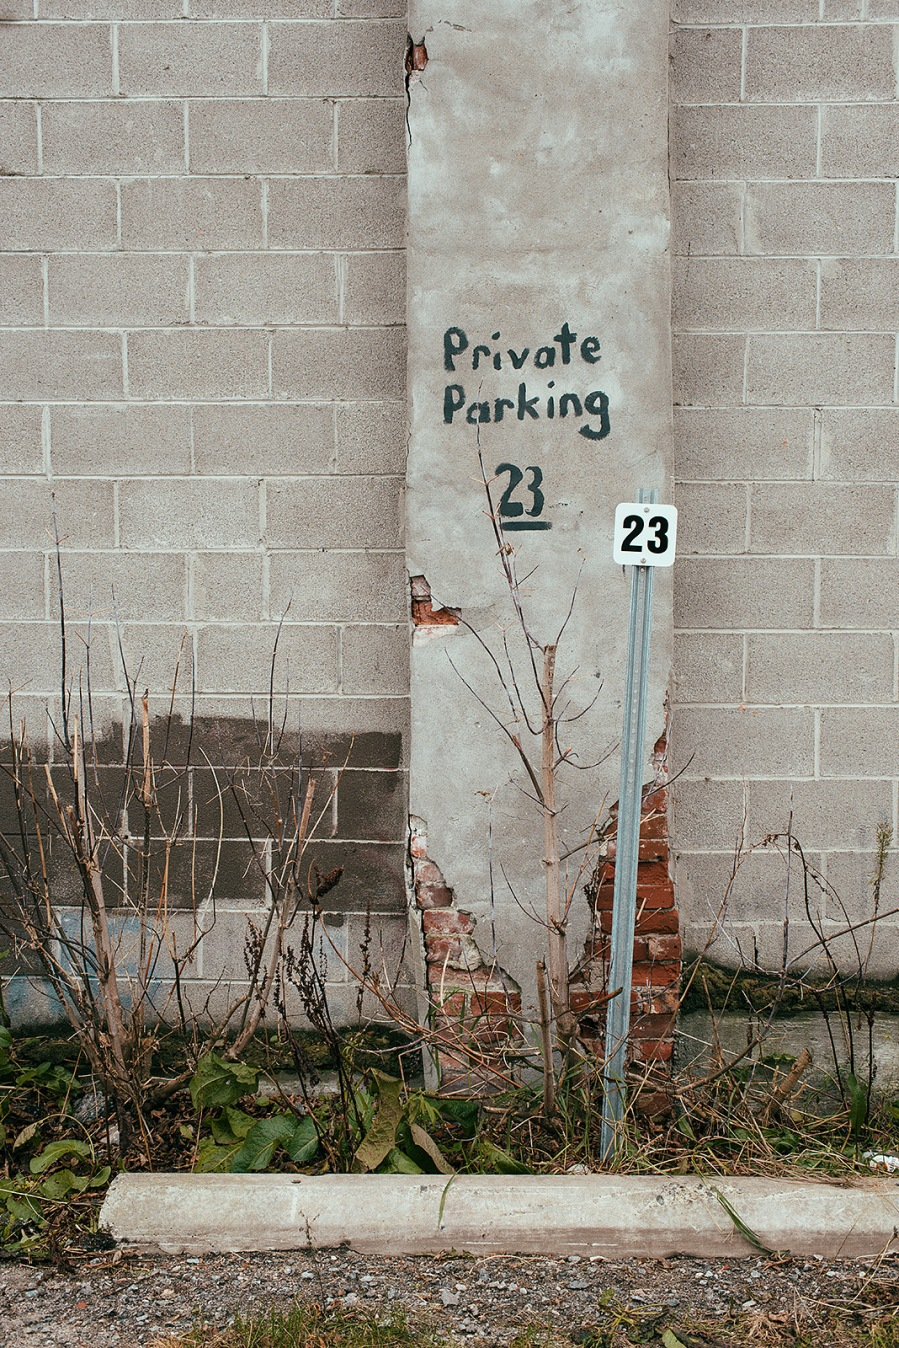 Private Parking - North Bay - Ontario